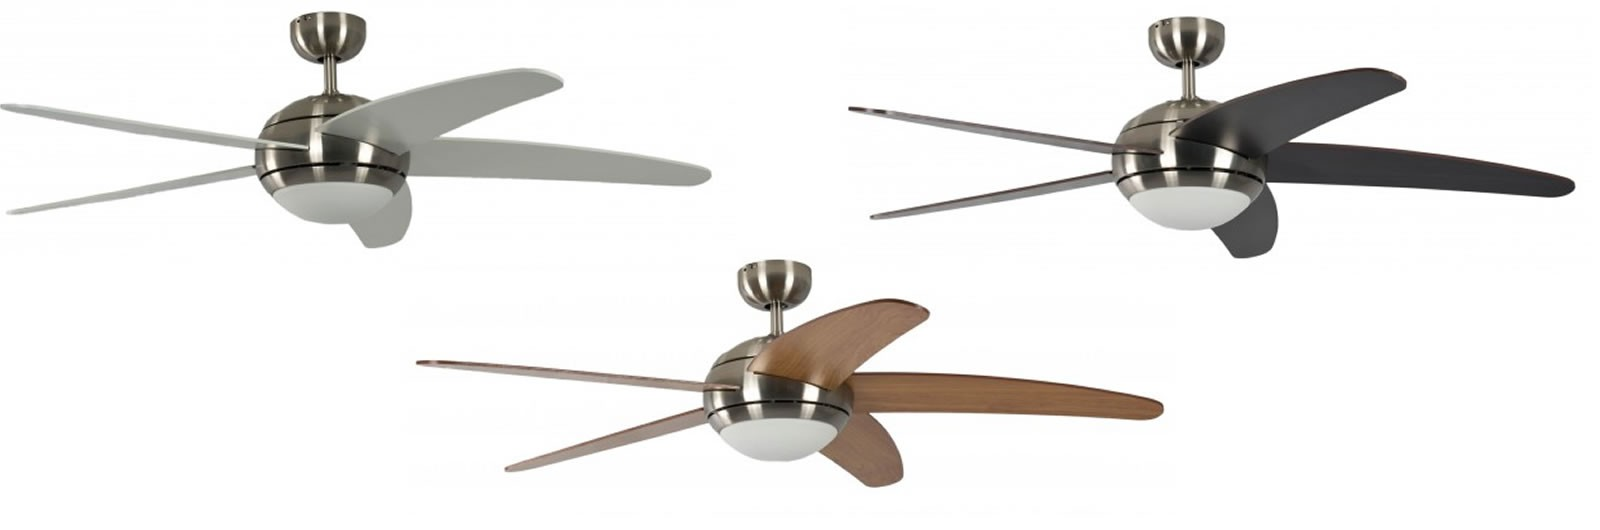 Ceiling fan melton nickel finish with included remote control ceiling